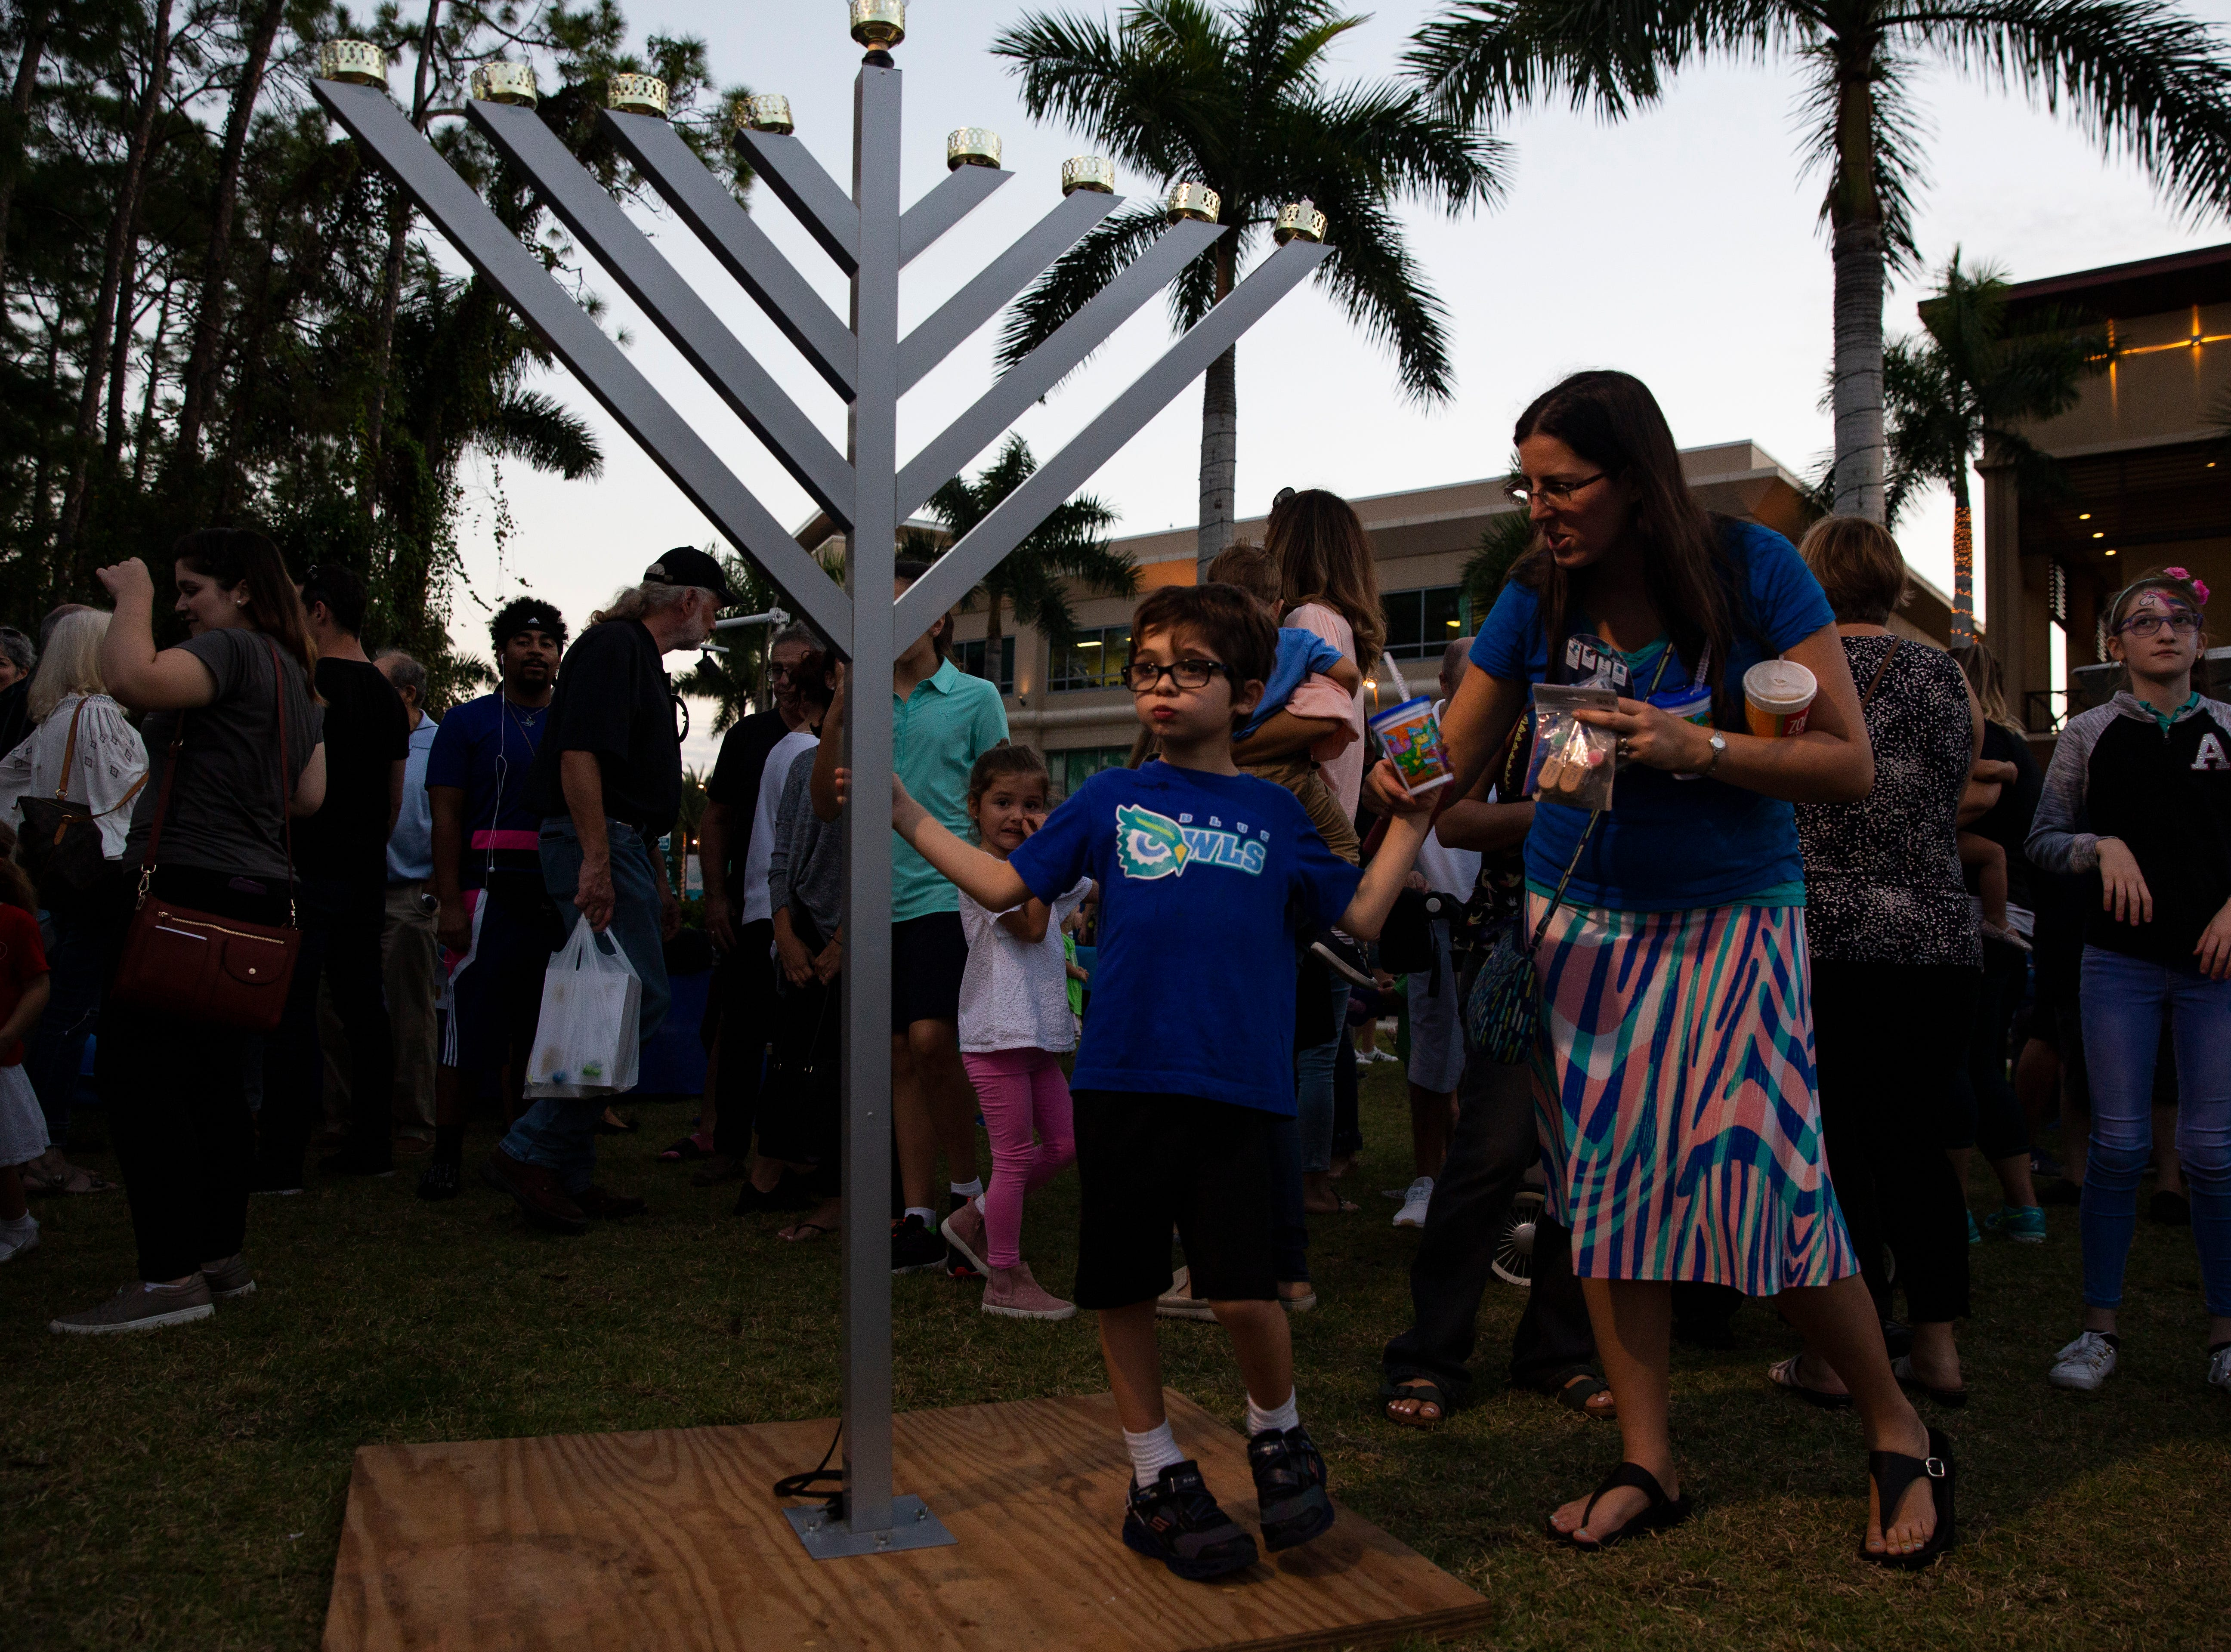 Eli Cohen, 6, stands by the menorah listening to the band play music during the  20th annual Hanukkah Celebration at the Mercato Lawn on Monday, Dec. 3, 2018, by the Jewish Federation.